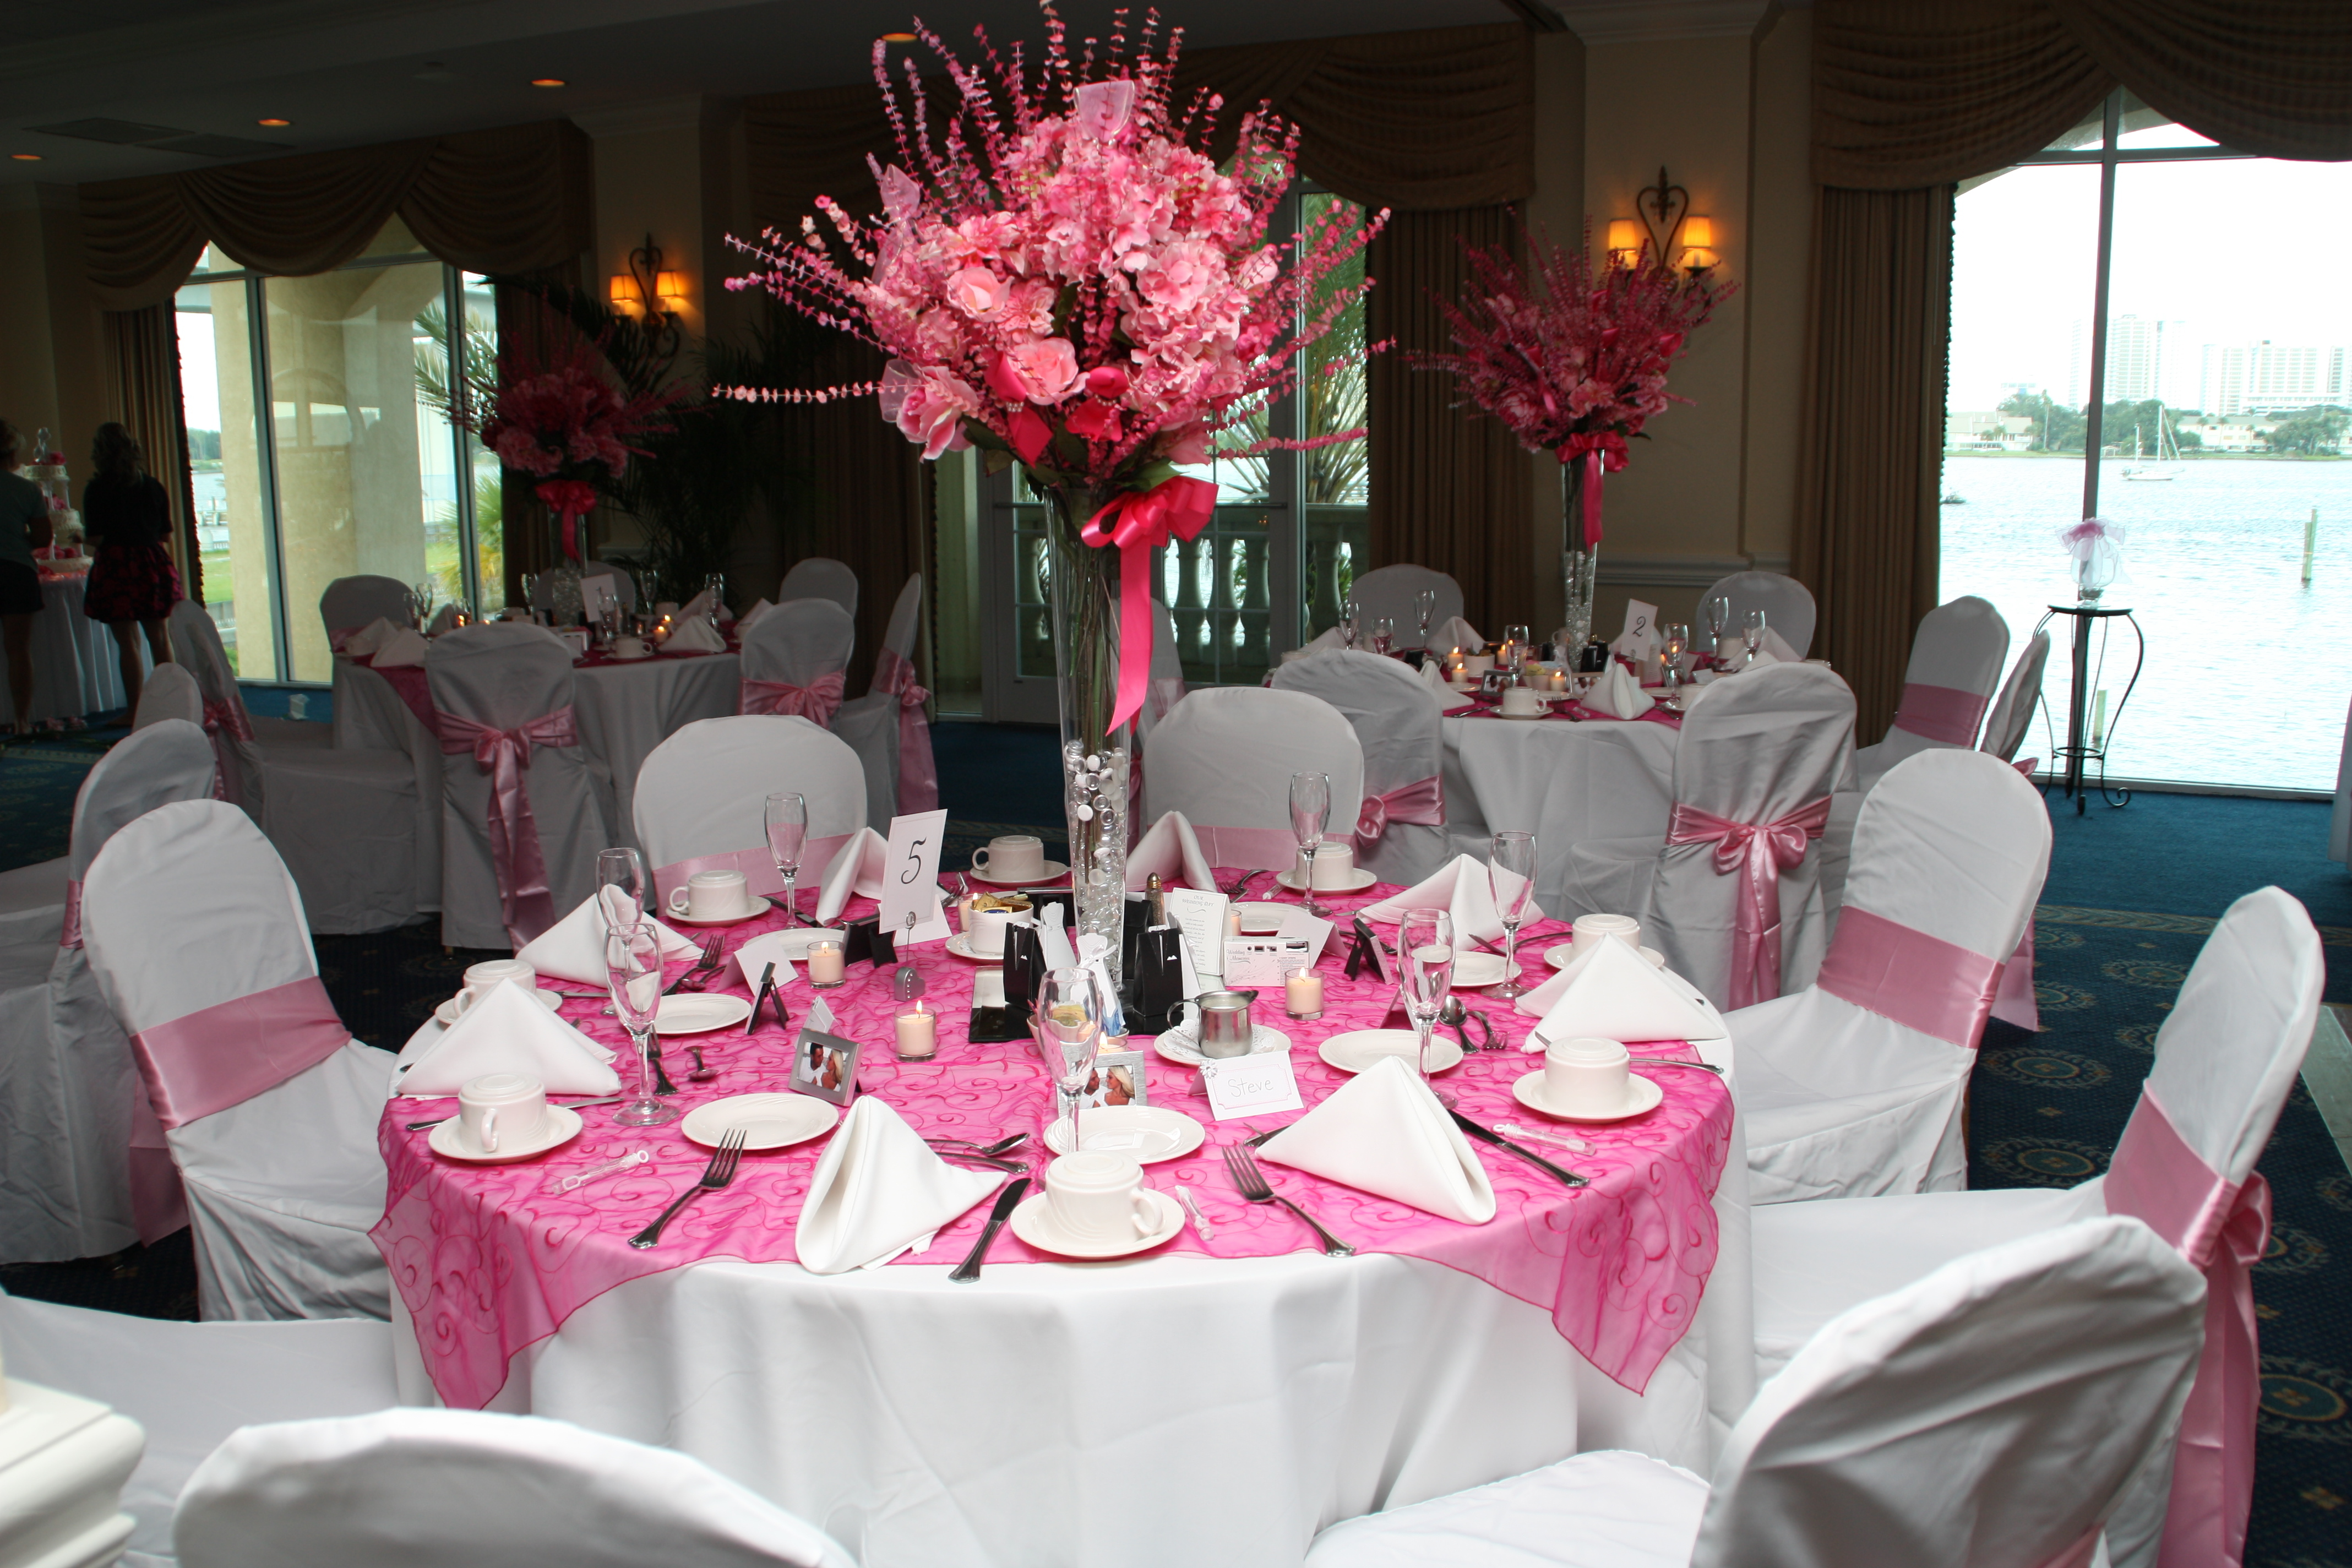 Inspiration, Reception, Flowers & Decor, pink, Centerpieces, Tables & Seating, Centerpiece, Table, Vase, Board, Chair, Trumpet, Tables, Cloth, Covers, Fuschia, Organza, Overlays, Embroidered, Lyndsey roberts photography